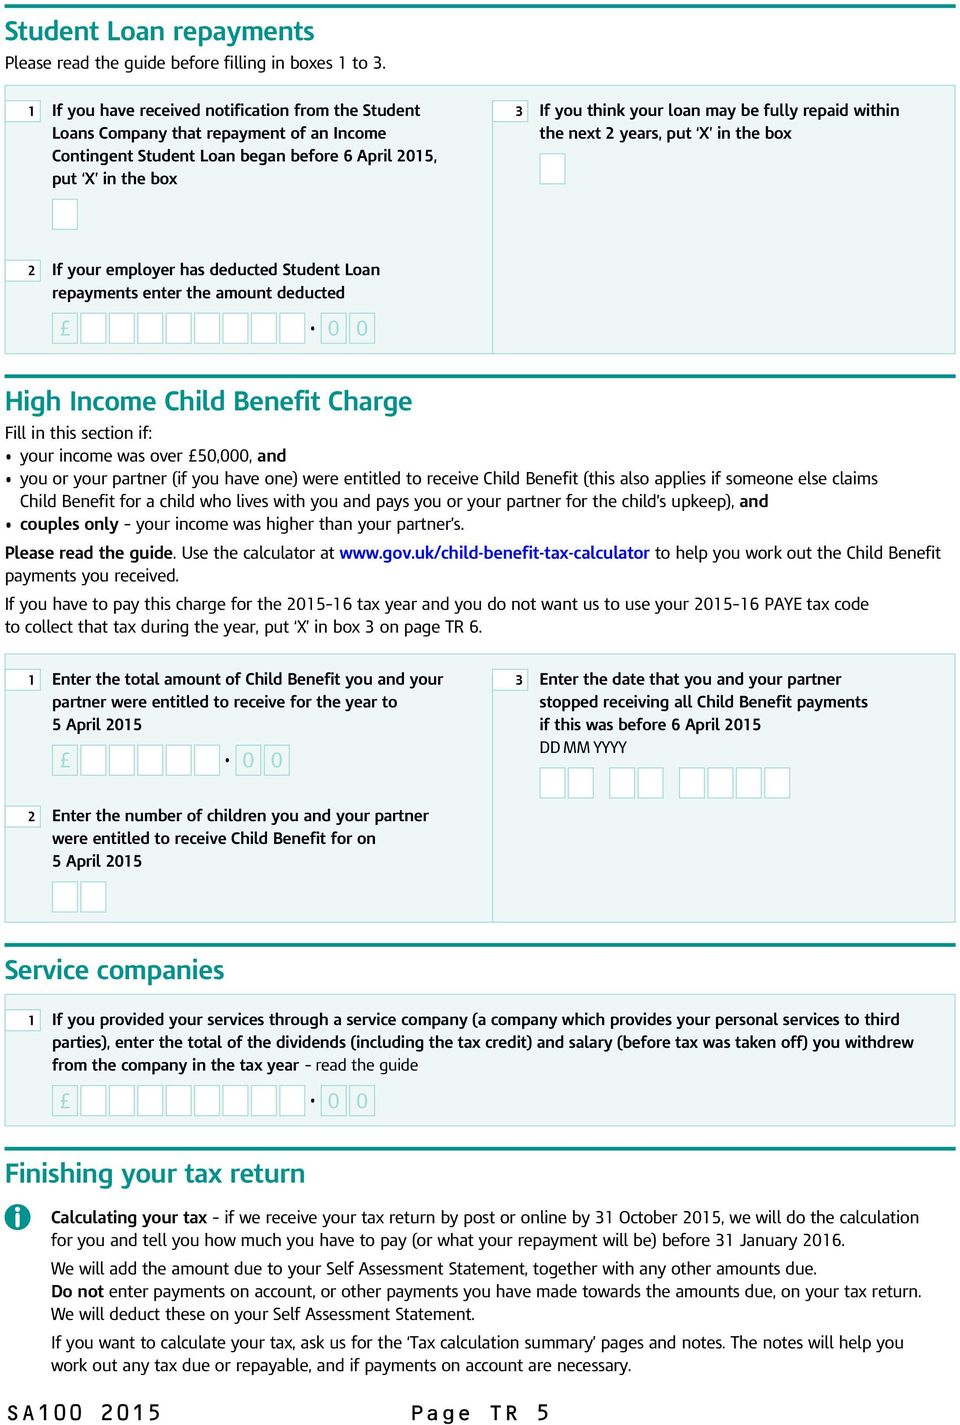 fully repaid within the next 2 years, put X in the box 2 If your employer has deducted Student Loan repayments enter the amount deducted High Income Child Benefit Charge Fill in this section if: your